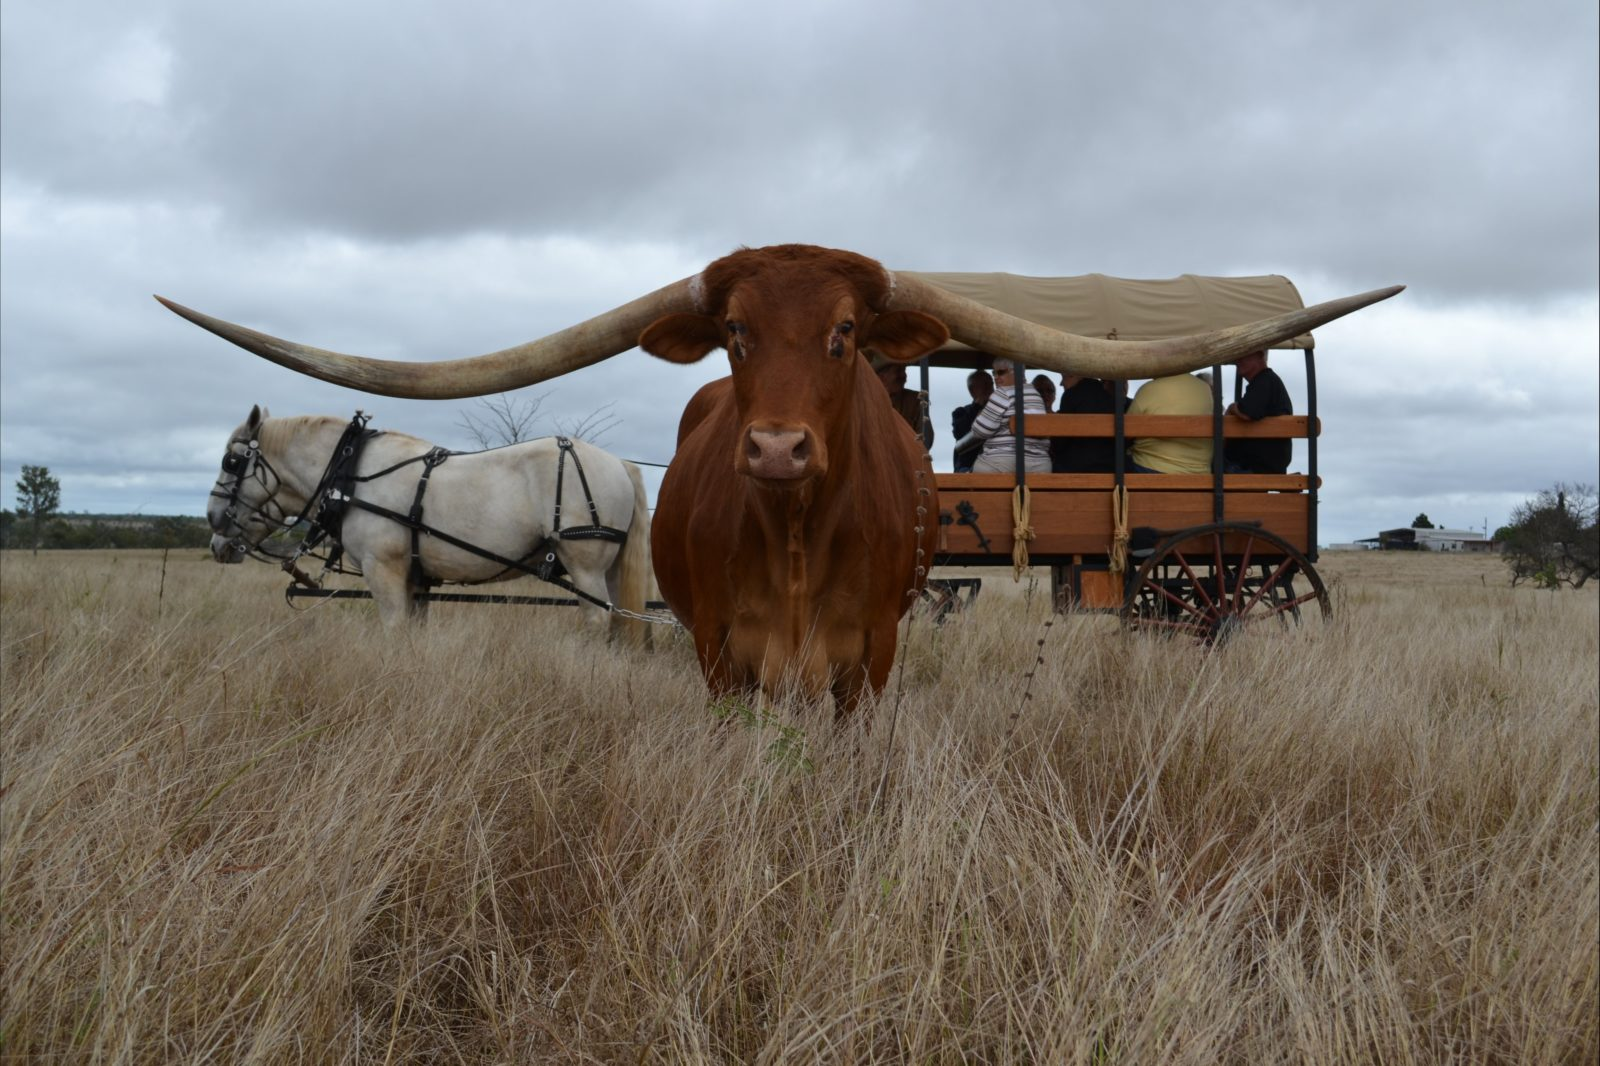 Guiness World Record Steer JR and Wagon